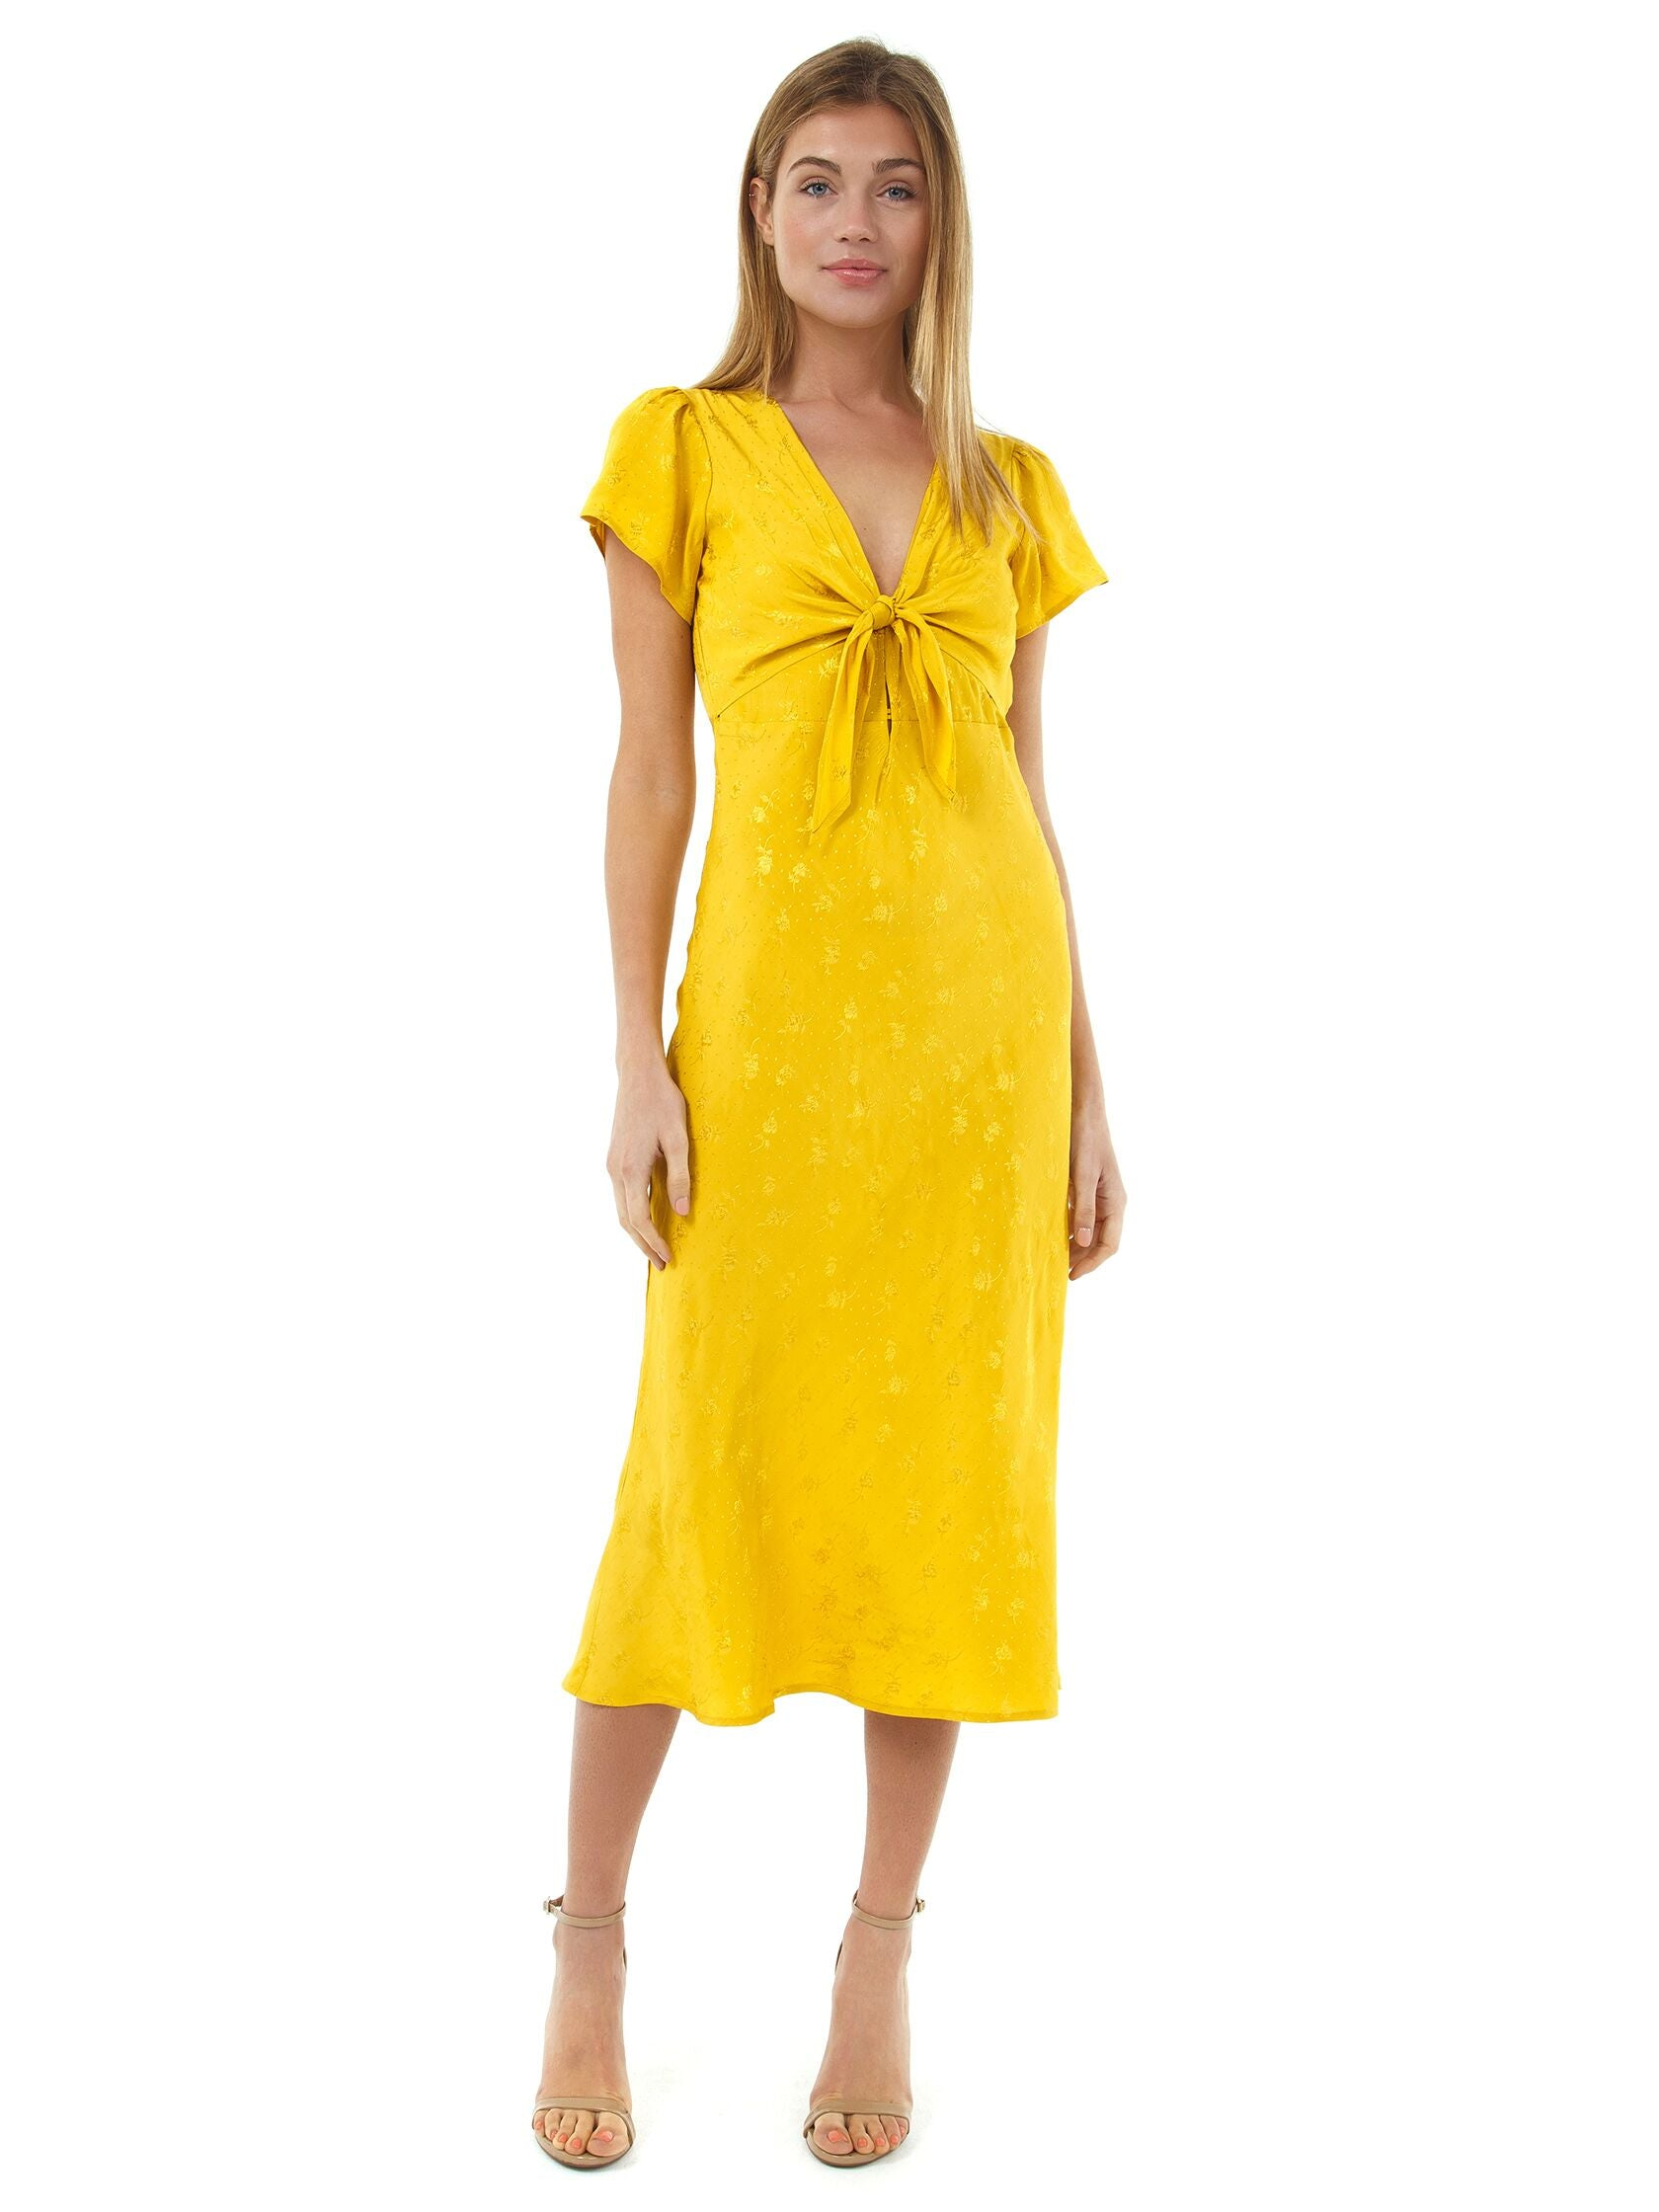 Girl outfit in a dress rental from ASTR called Serendipity Front Tie Midi Dress